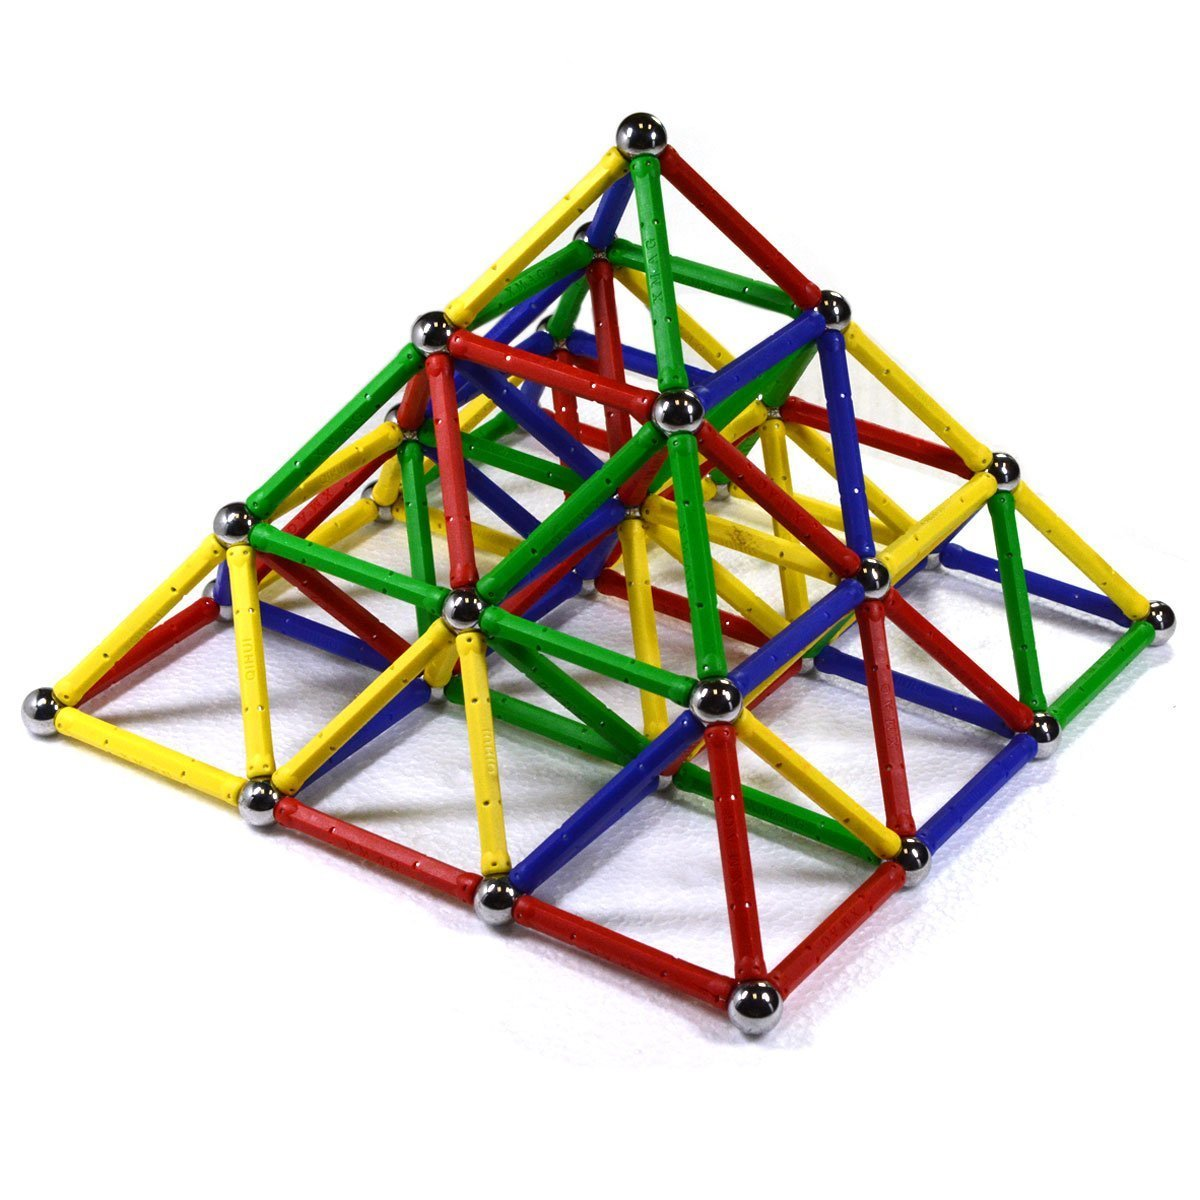 CMS MAGNETICS 156 PC Magic Magnetic Building Sets - Magnetic Brain Building Toys for Kids and Adults - Magnet Toy for All Ages by CMS MAGNETICS